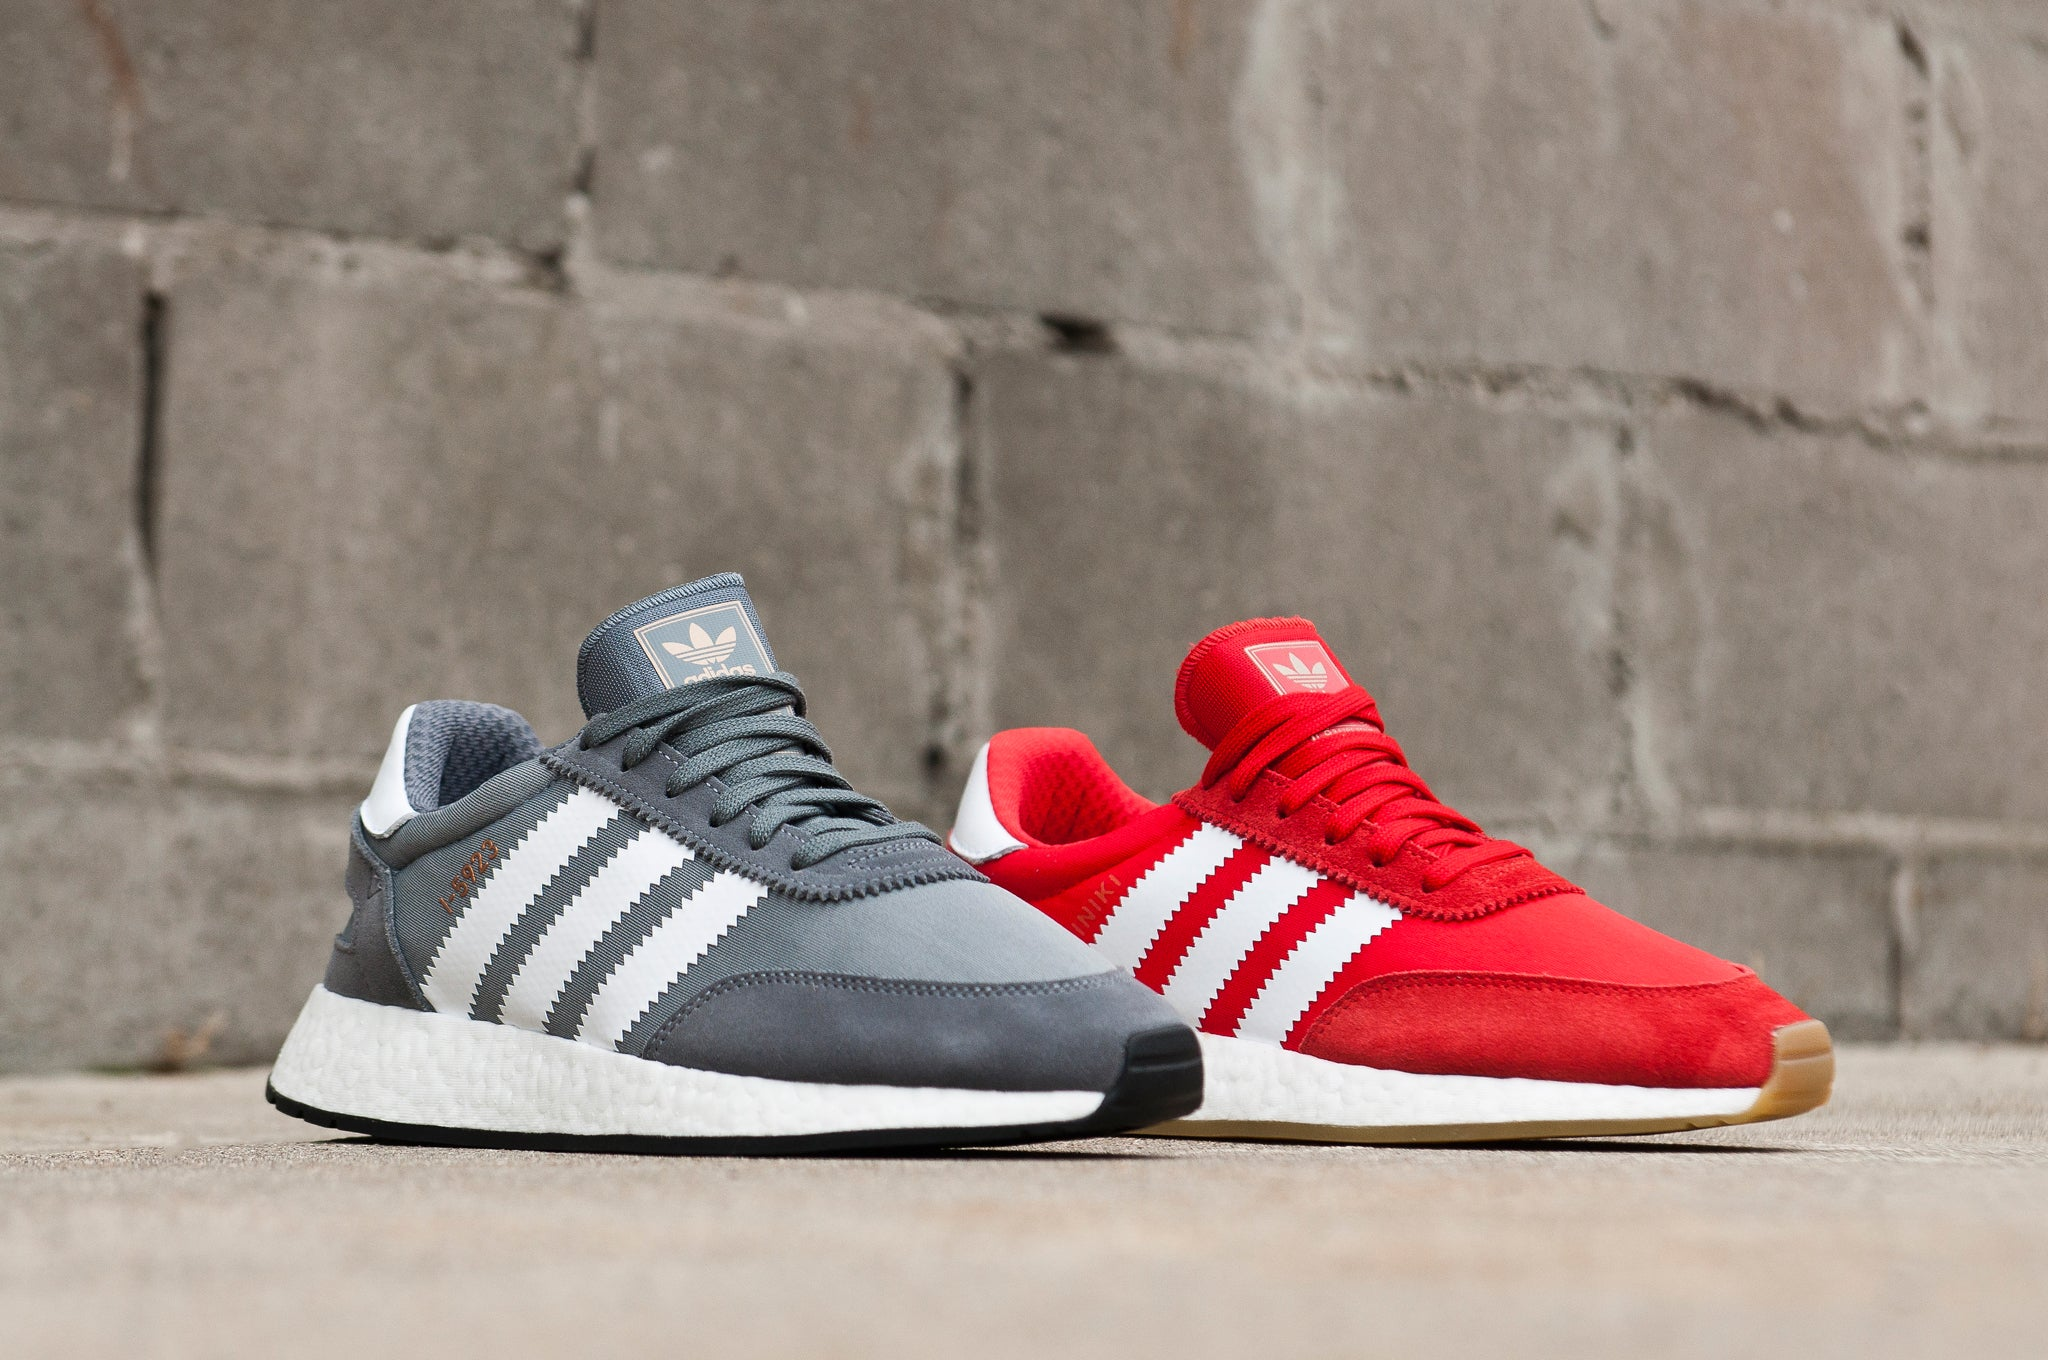 Adidas Originals Iniki Runner Red and Gray at shoplostfound 1